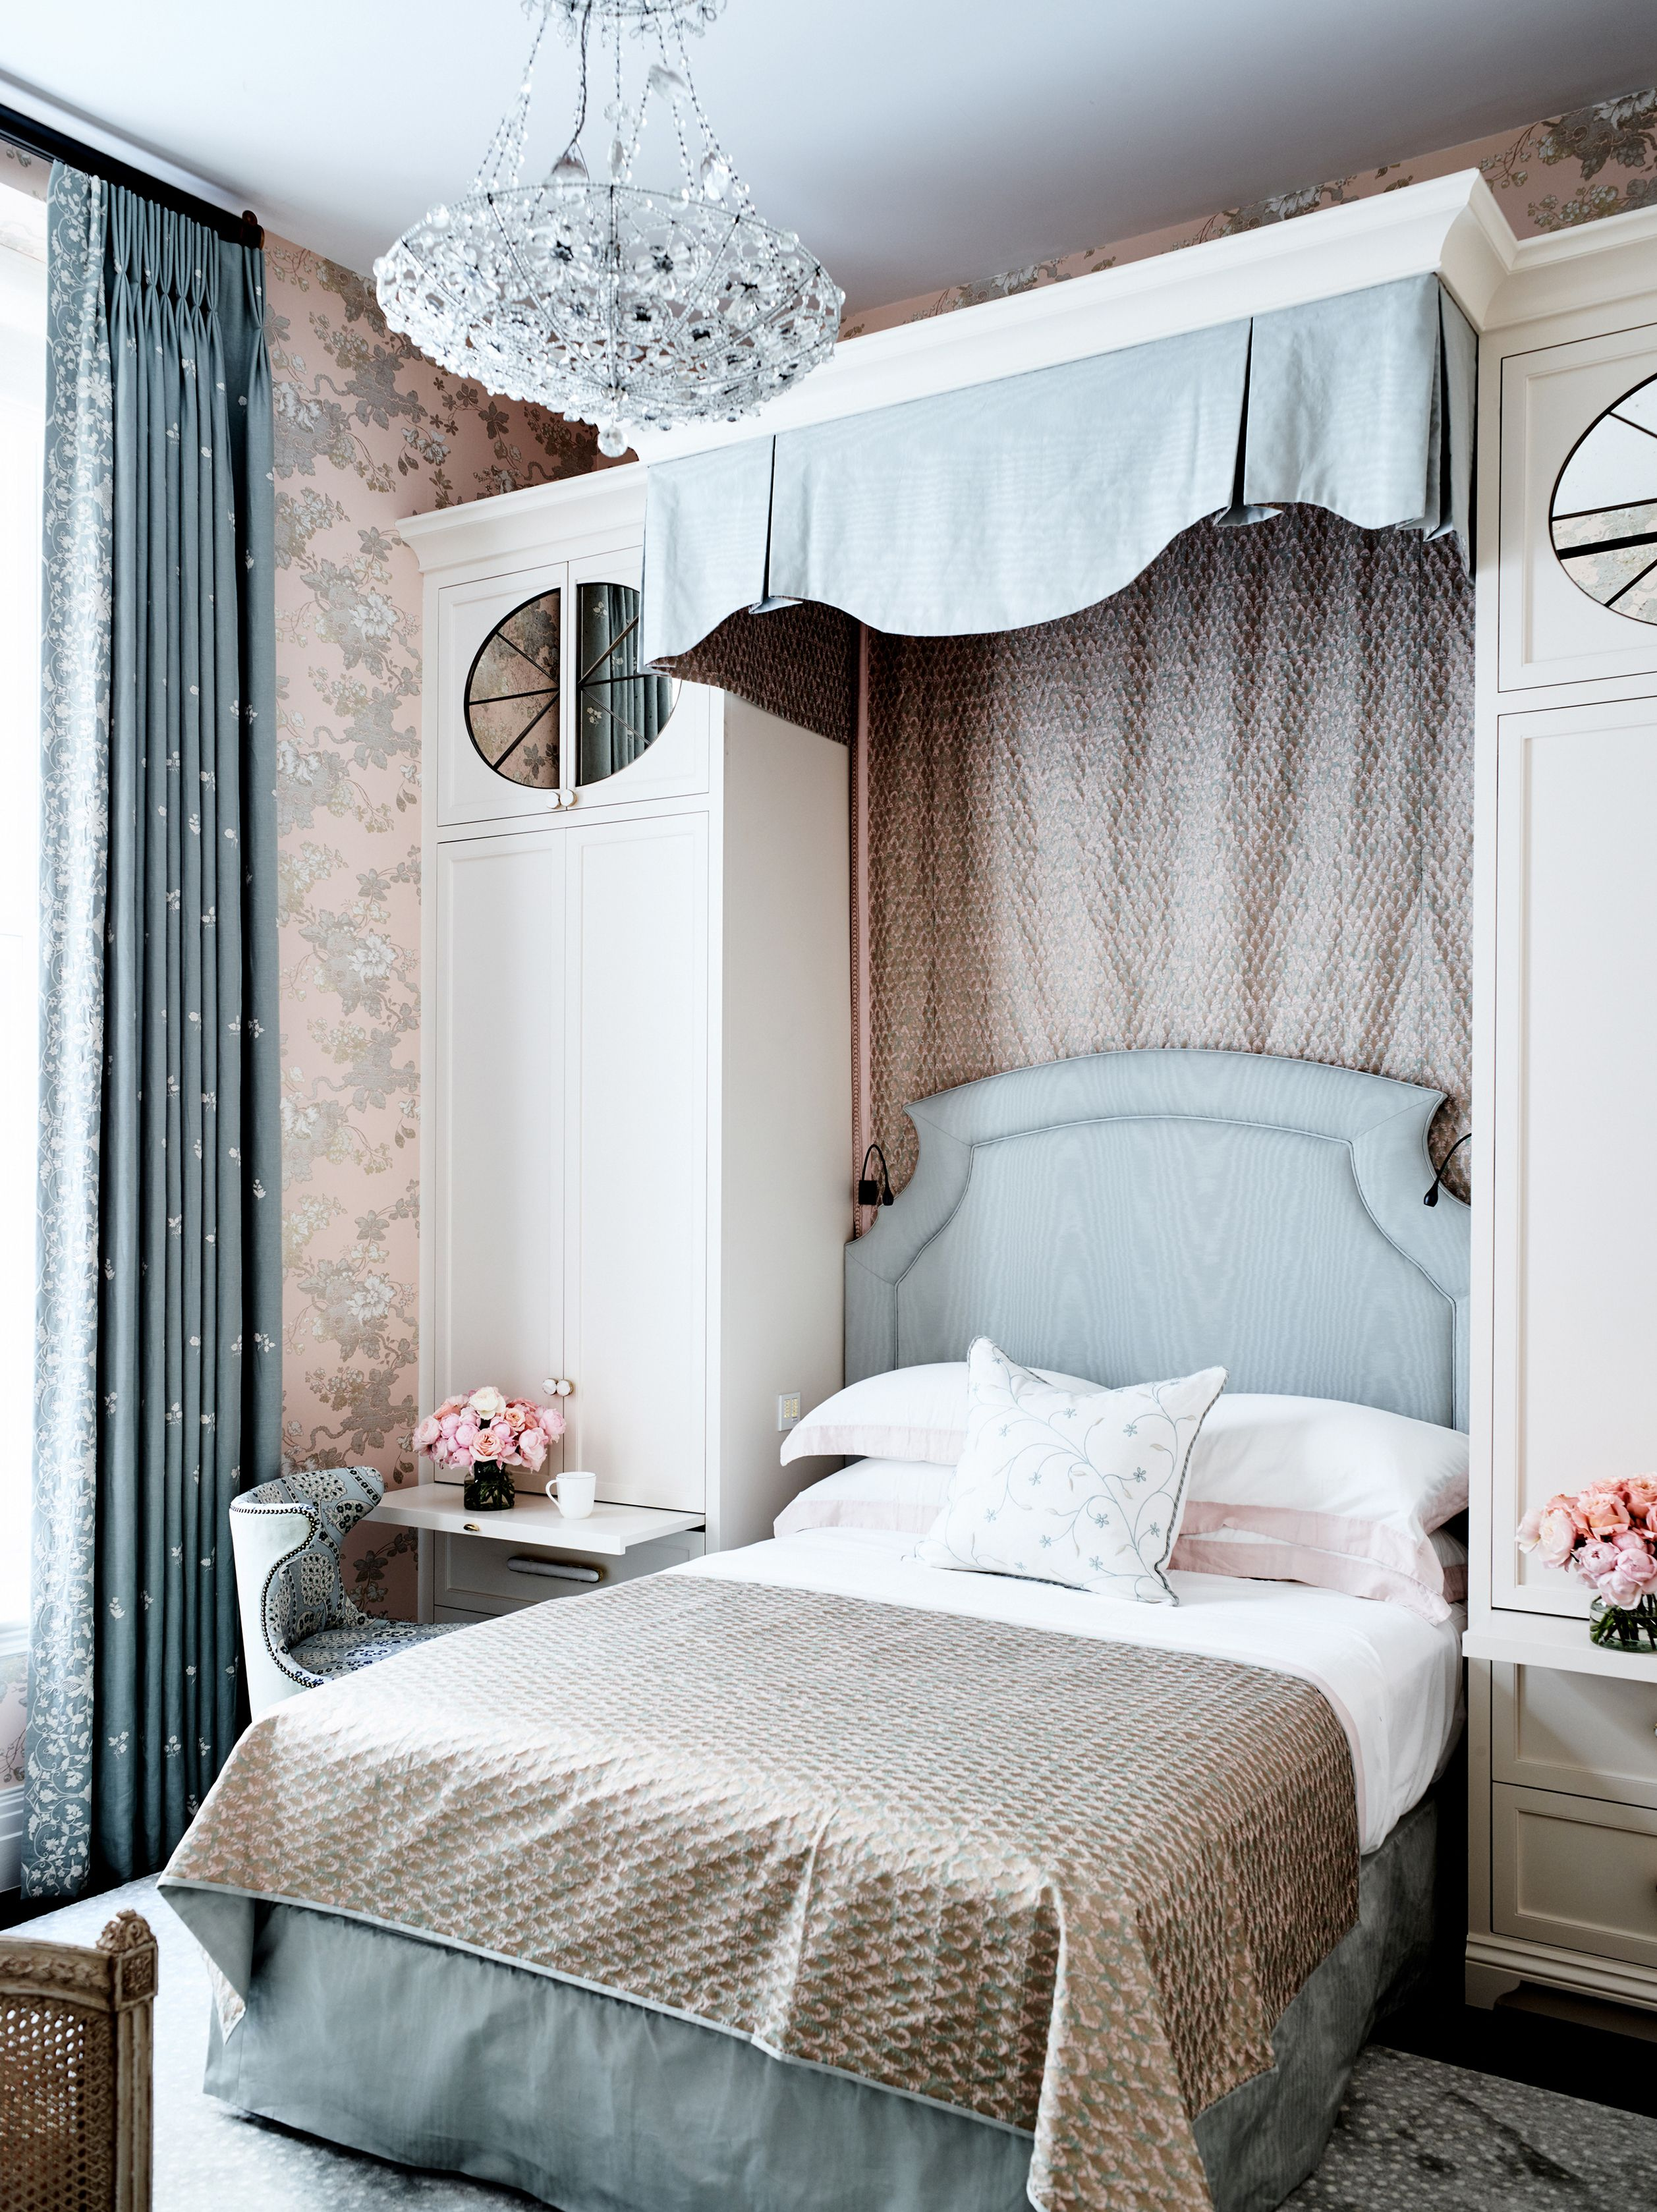 72 Small Bedroom Decor Ideas Decorating Tips For Small Bedrooms